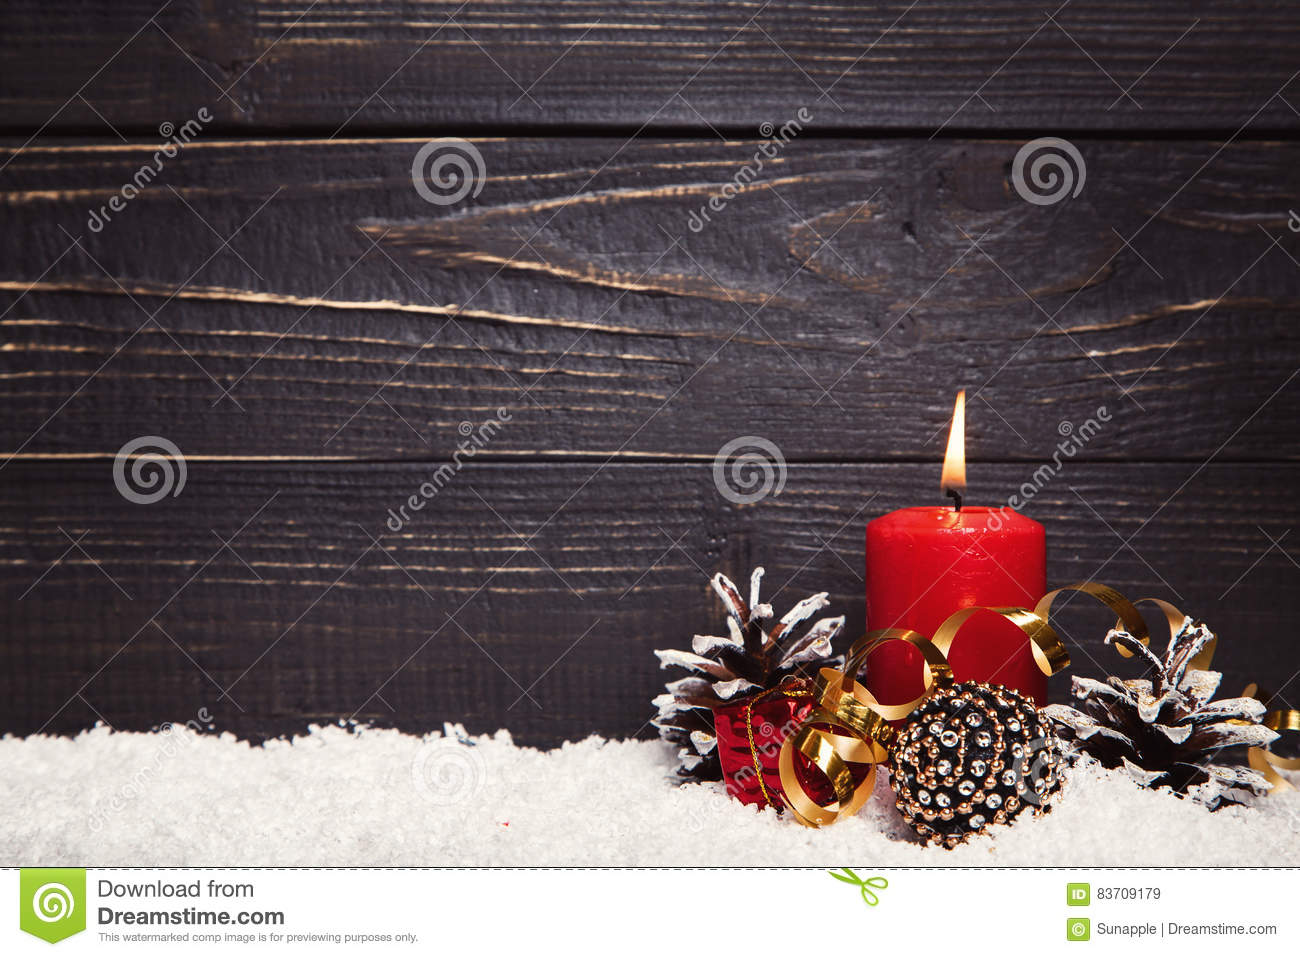 Red Burning Candle With Black Rustic Wooden Board Stock Photo